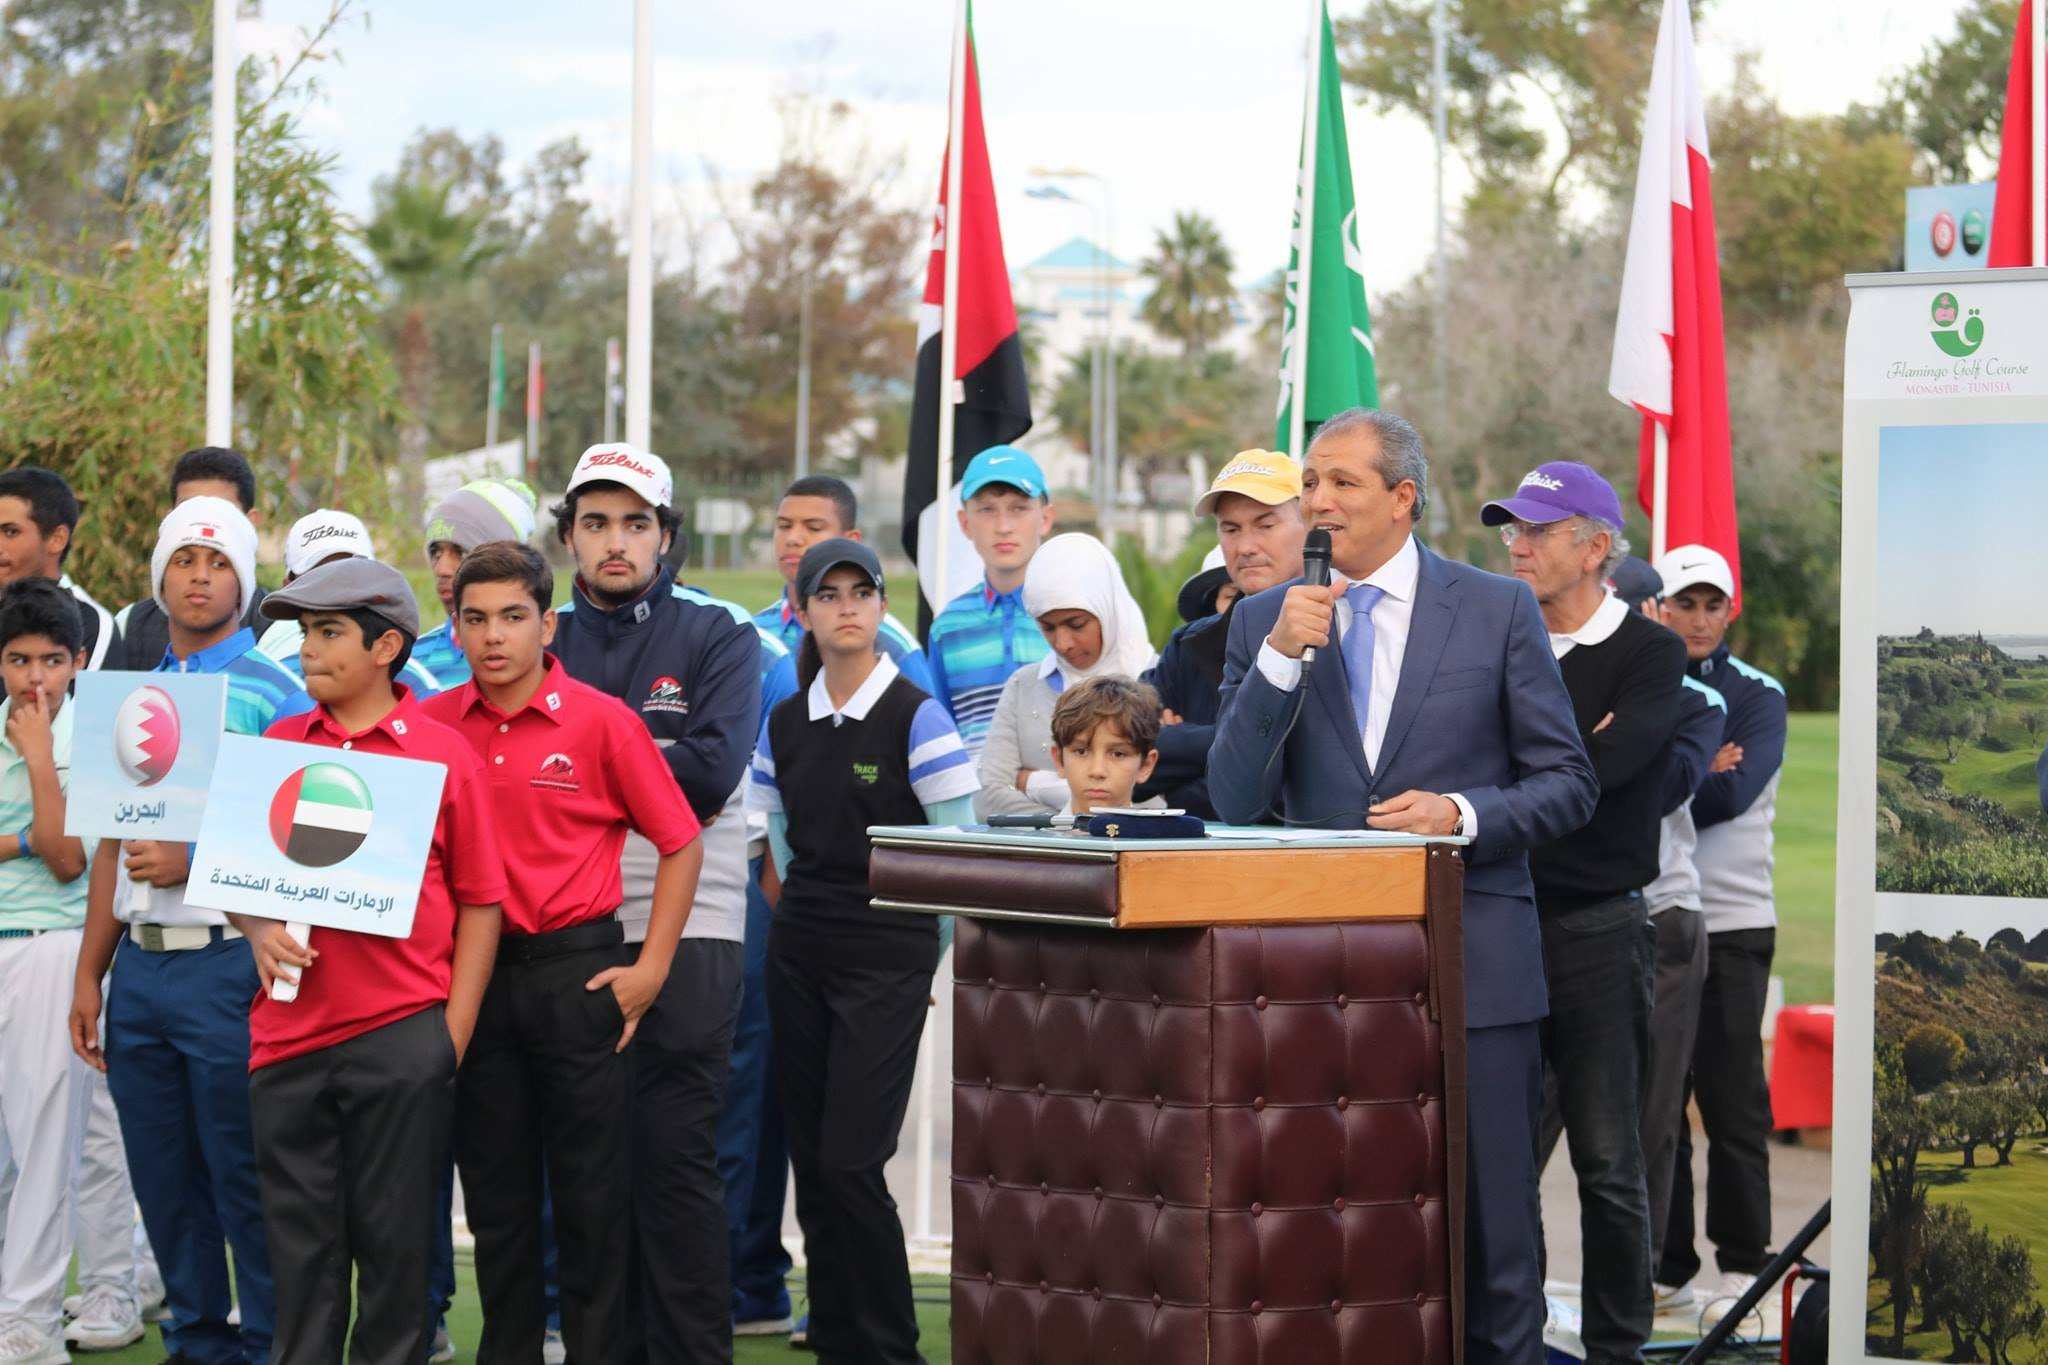 http://www.mjs.tn/images/album-photo/golf_champ-arabe2017/golf_champ-arabe1.jpg